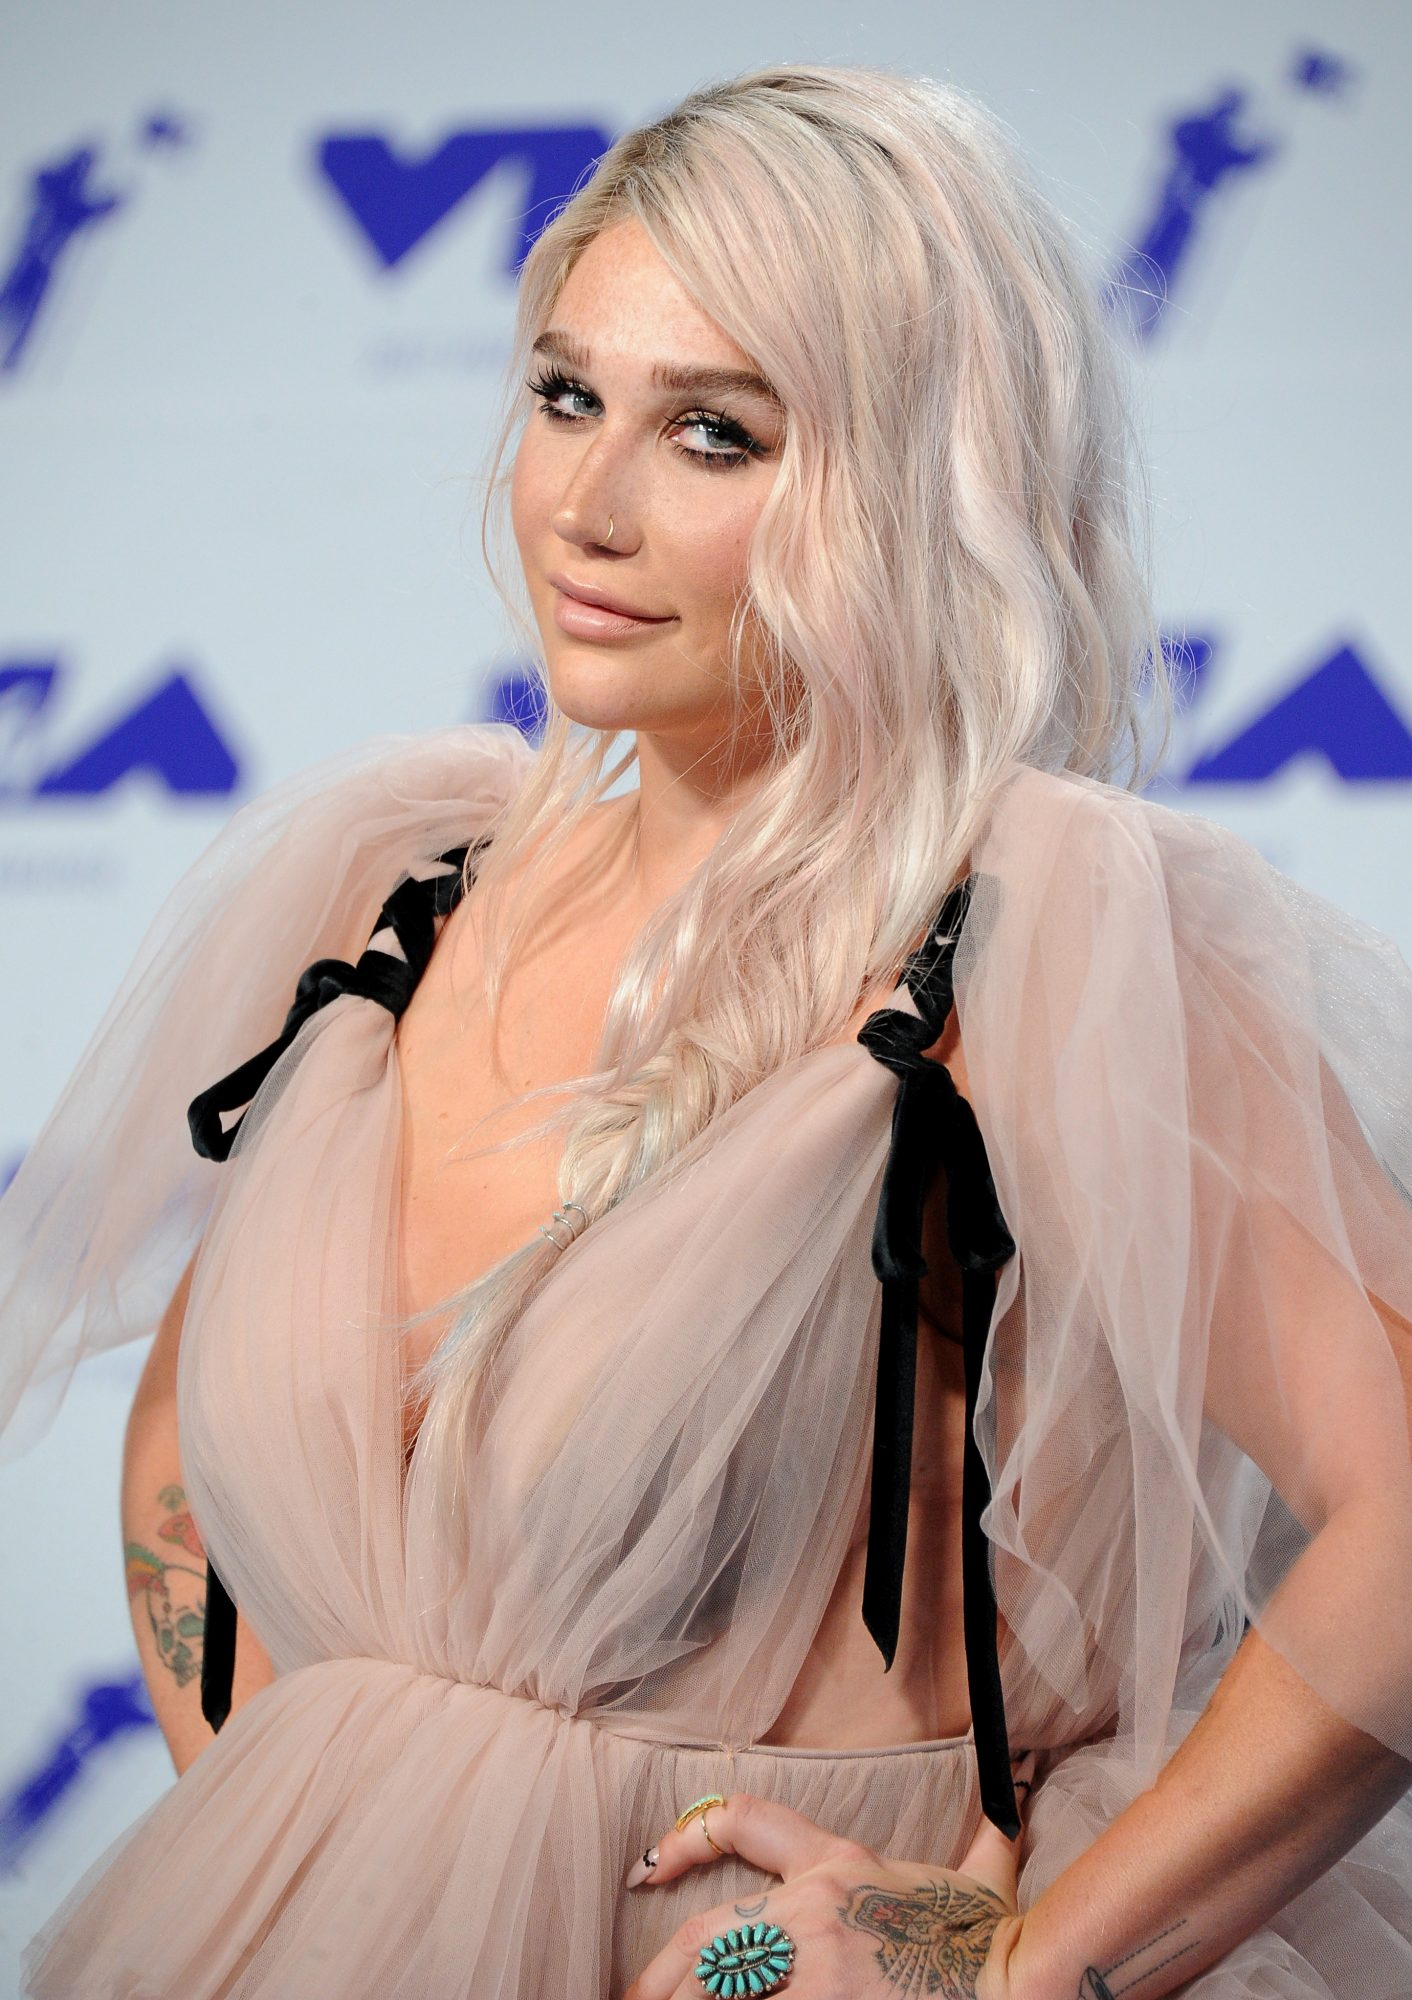 Kesha's Speech & Logic's Powerful Performance at VMAs Drives Major Increase to Suicide Prevention Hotline Calls